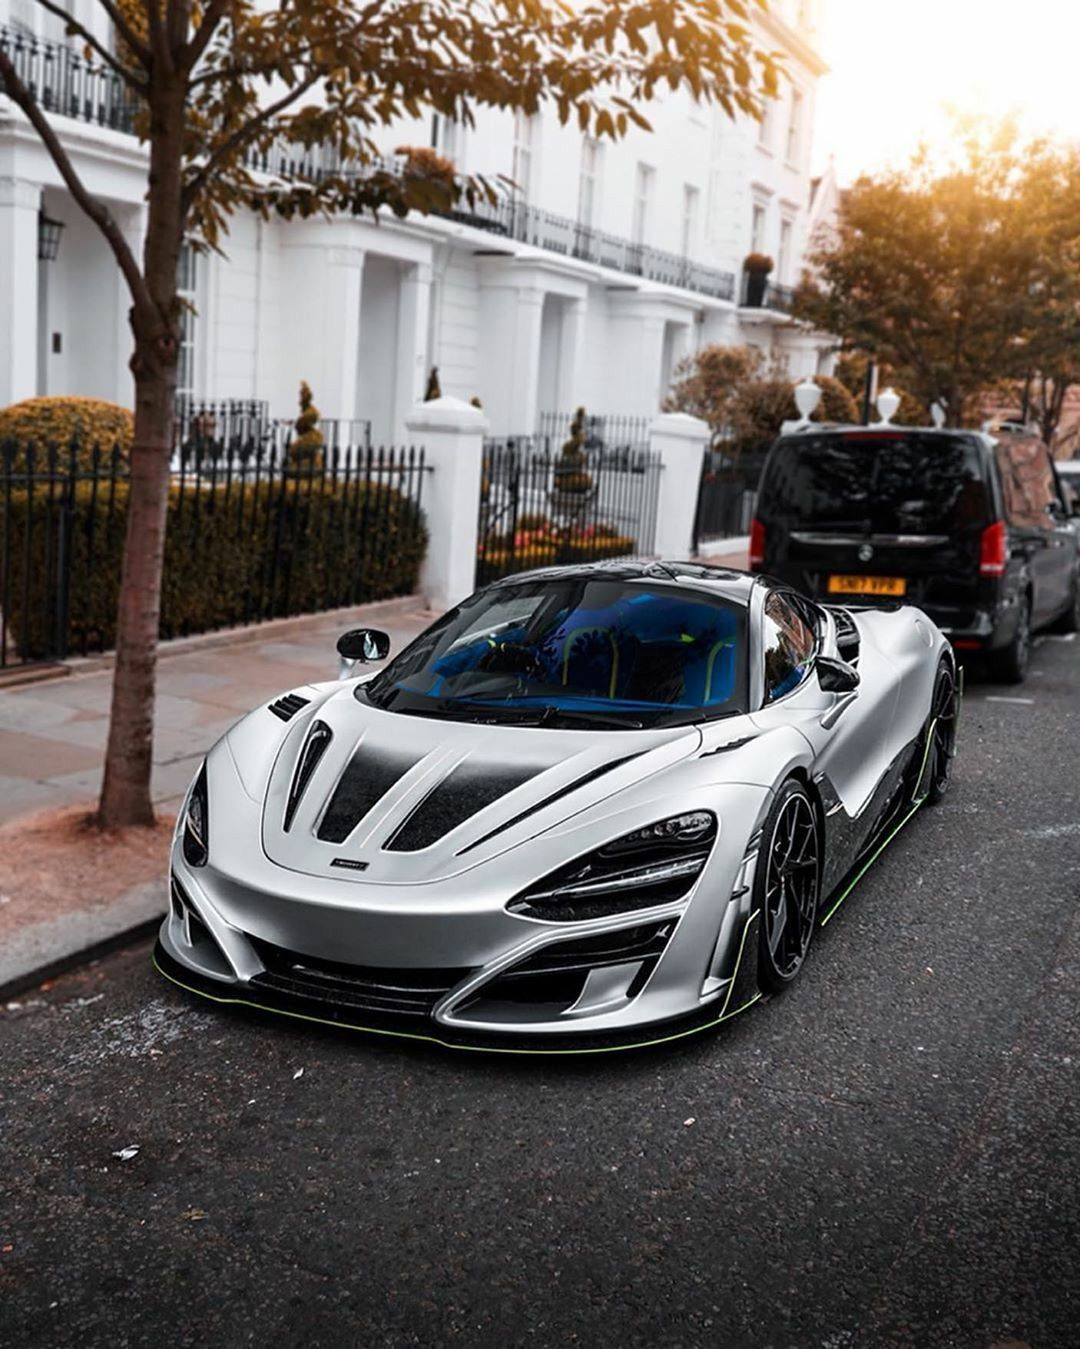 Pin By Arafath Kader On Dream Super Car In 2020 Mclaren Uk Photos Dream Cars